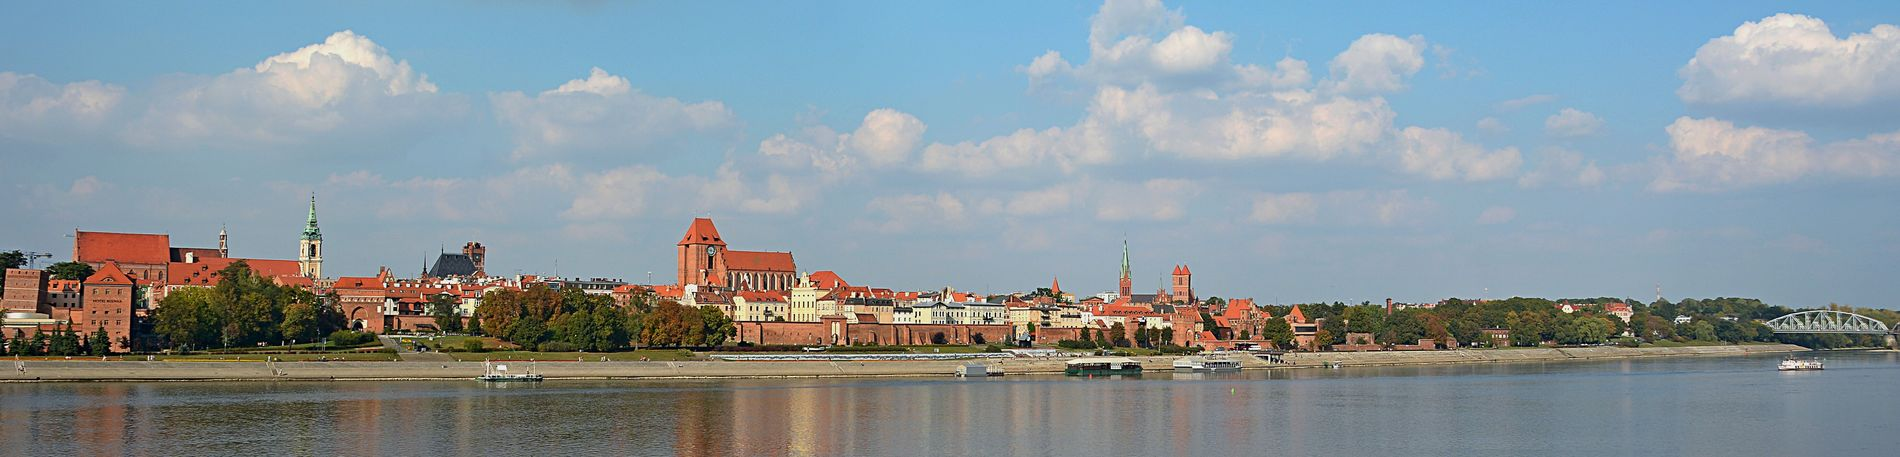 Panorama Urban Architecture River Bulwar Filadelfijski Architecture Old Town Gothic Architecture Water Reflections Water Summer Gothic Church Gothic Nikonphotography Clouds And Sky